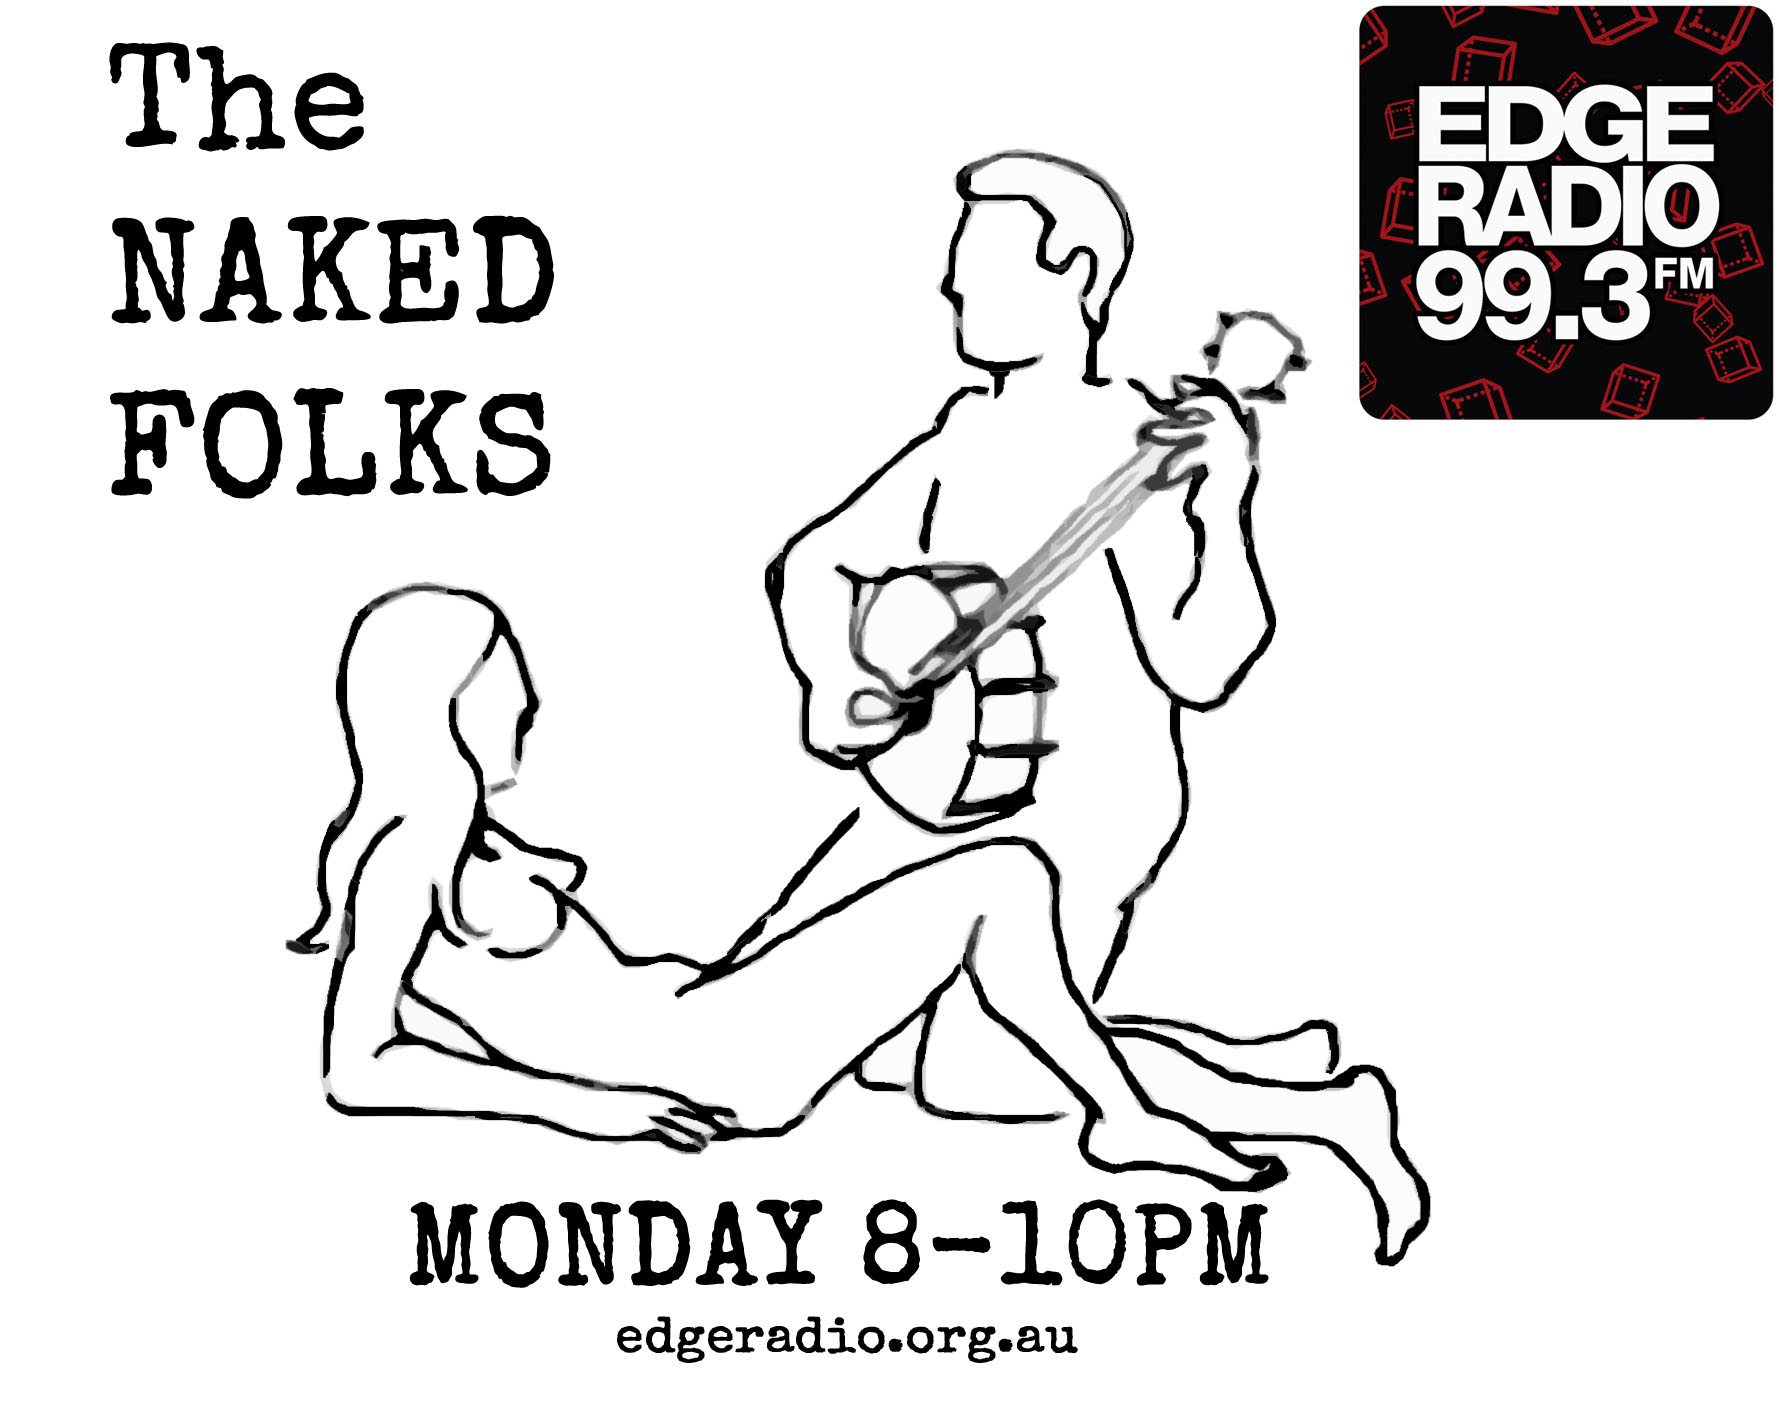 Variations on a theme on The Naked Folks with Carlos (CC Thornley)